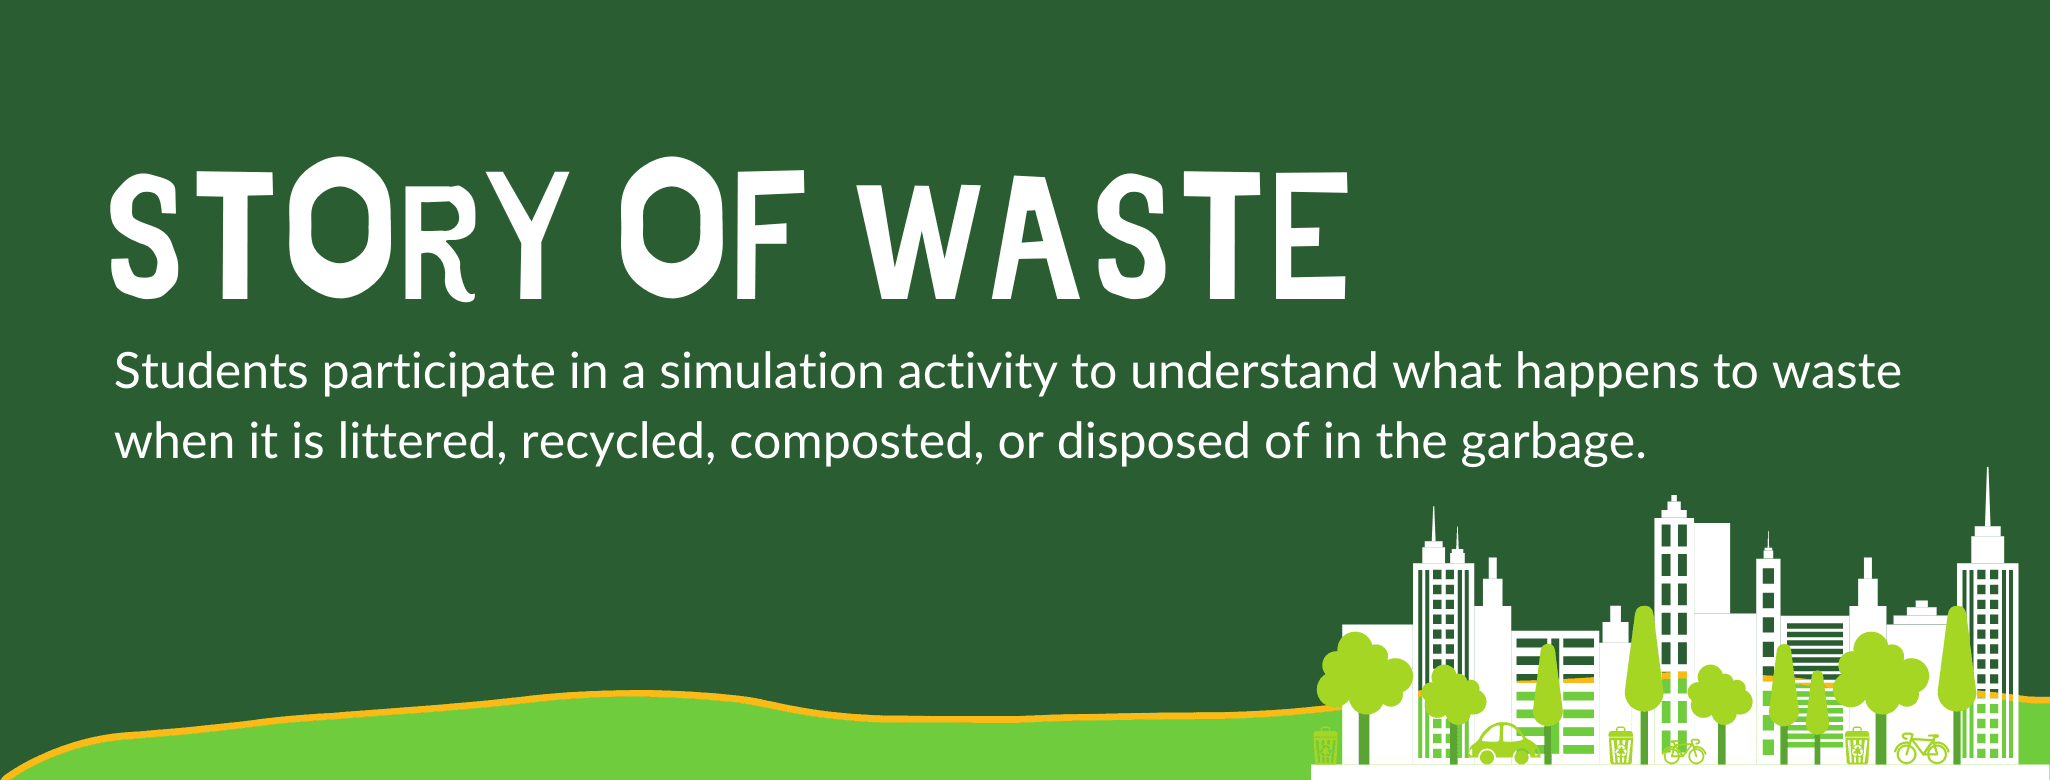 Story of Waste